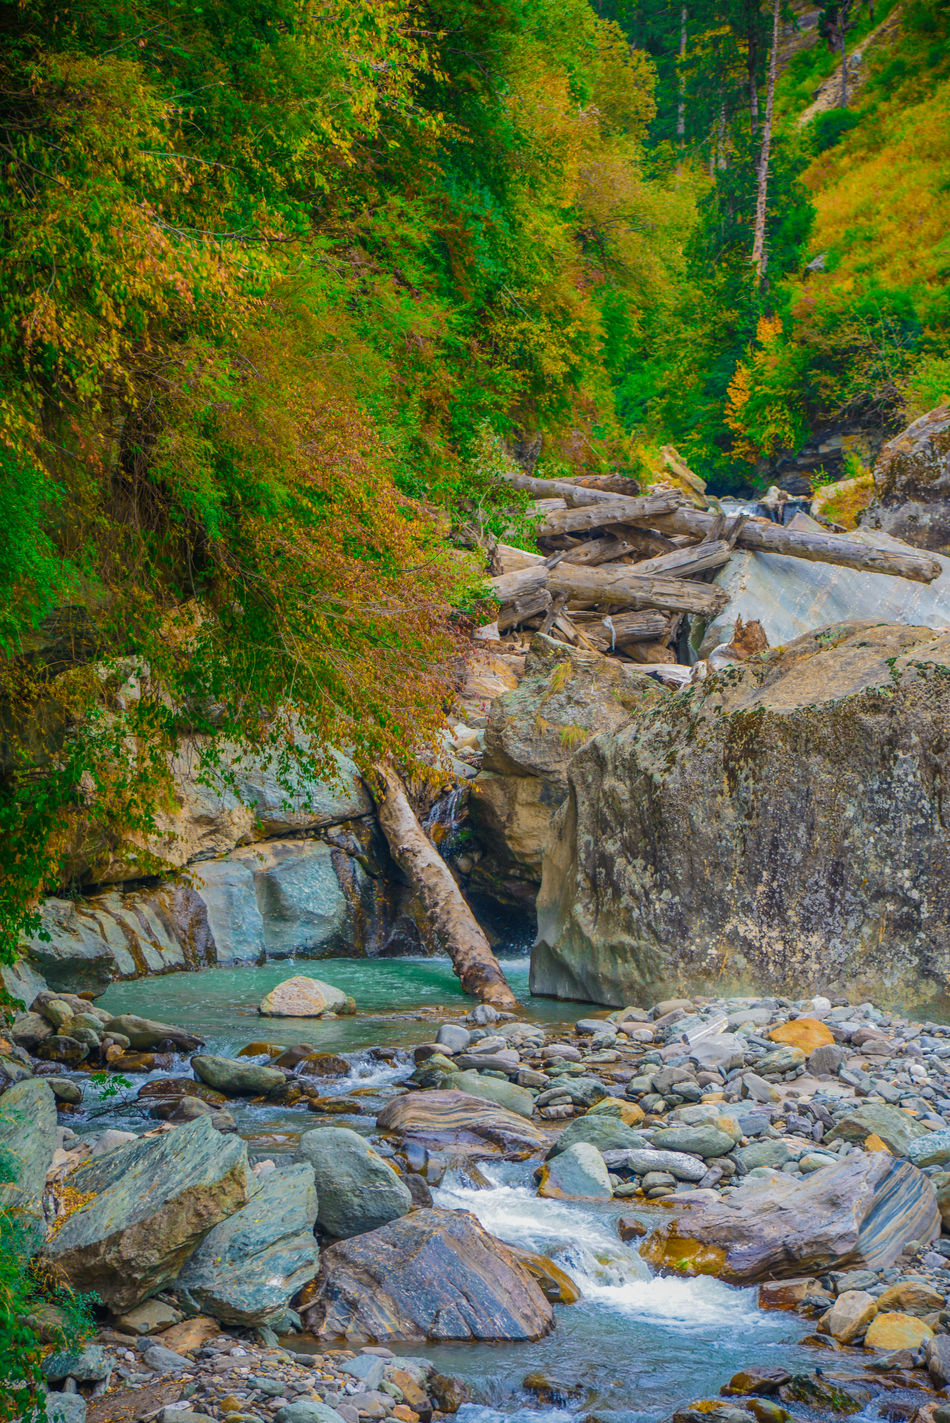 Beautiful Colourful Nature Himachal Pradesh Incredible India Malana Magic Valley Monochrome Monument Nature Peaceful River Travel Photography Traveling Traveling India Tree Wanderer Wanderlust